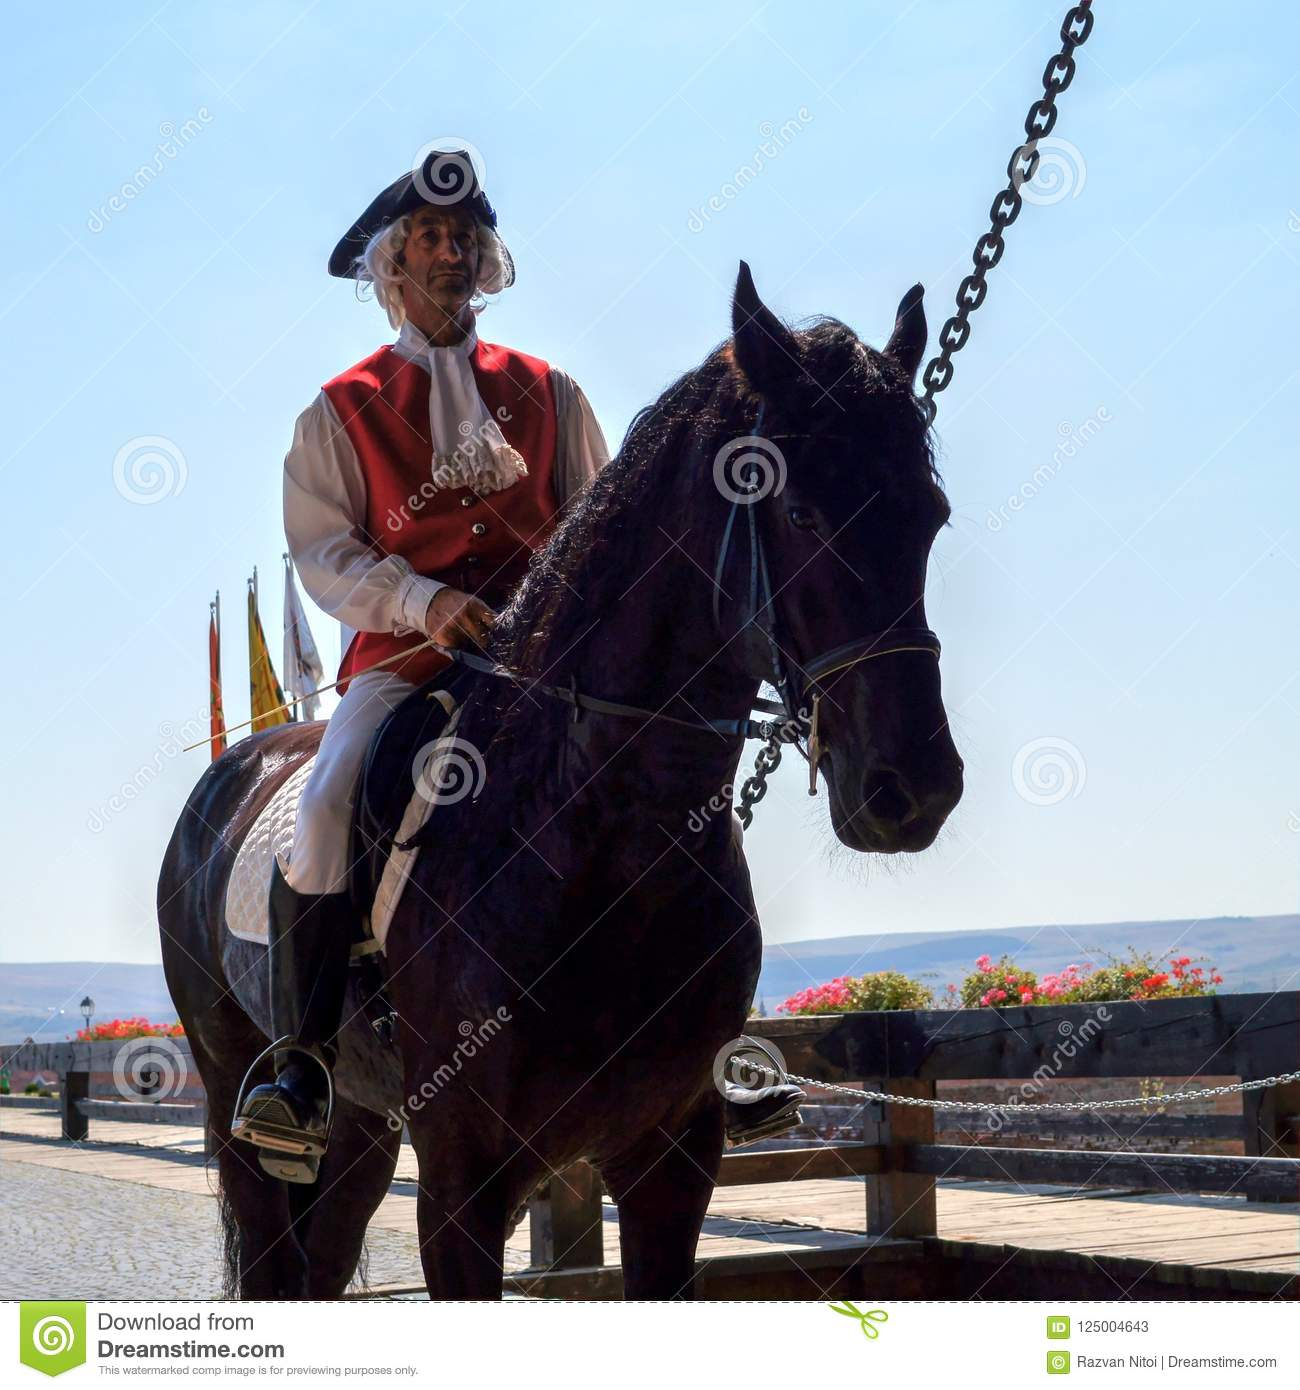 Man Wearing Medieval Costume Riding On A Horse Editorial Stock Photo Image Of Battle Equestrian 125004643